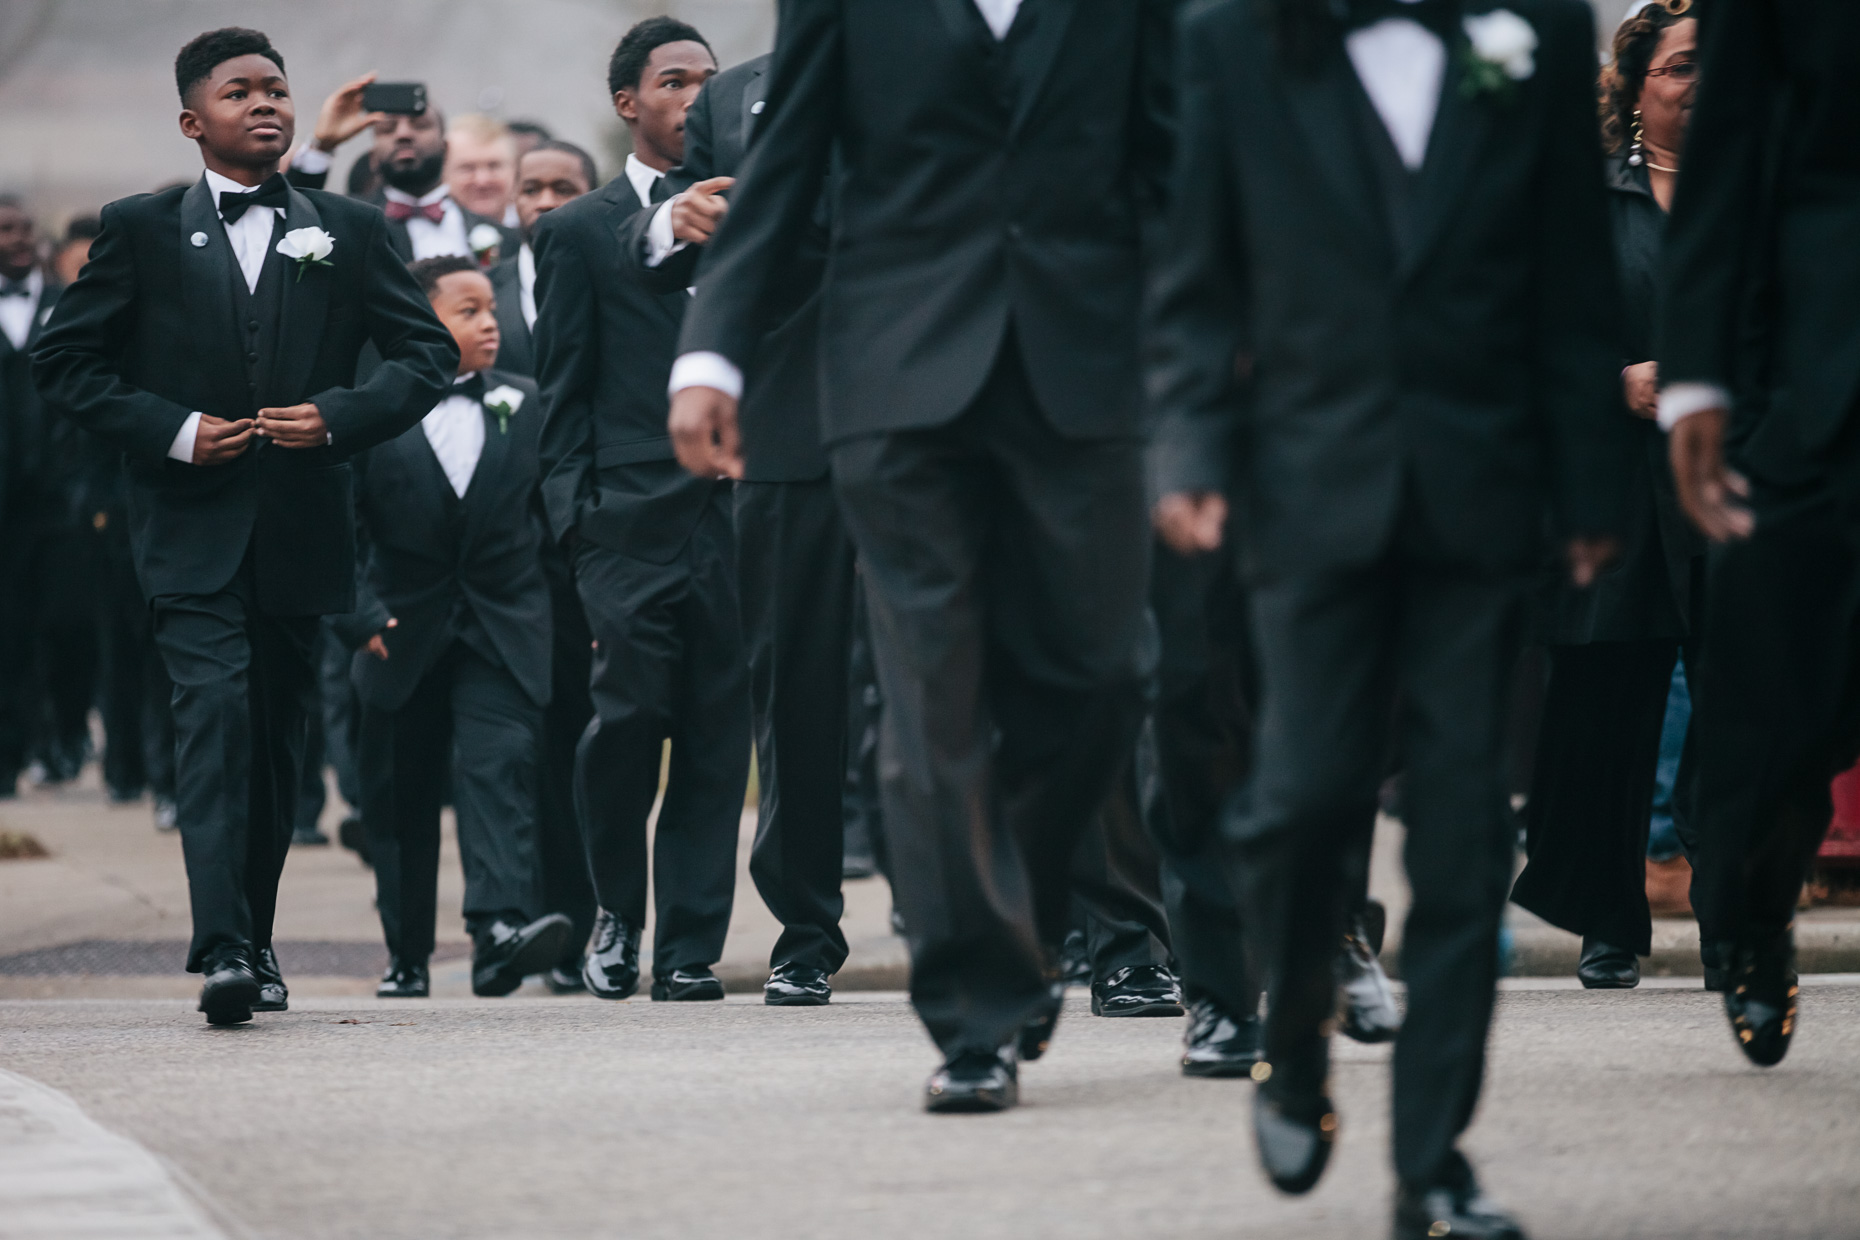 Treshon Lewis, 14, proudly wears his tuxedo at the 500 Black Tuxedos Event , organized by Andre Lee Ellis on Saturday December 12th, 2015 in Milwaukee, Wisconsin.